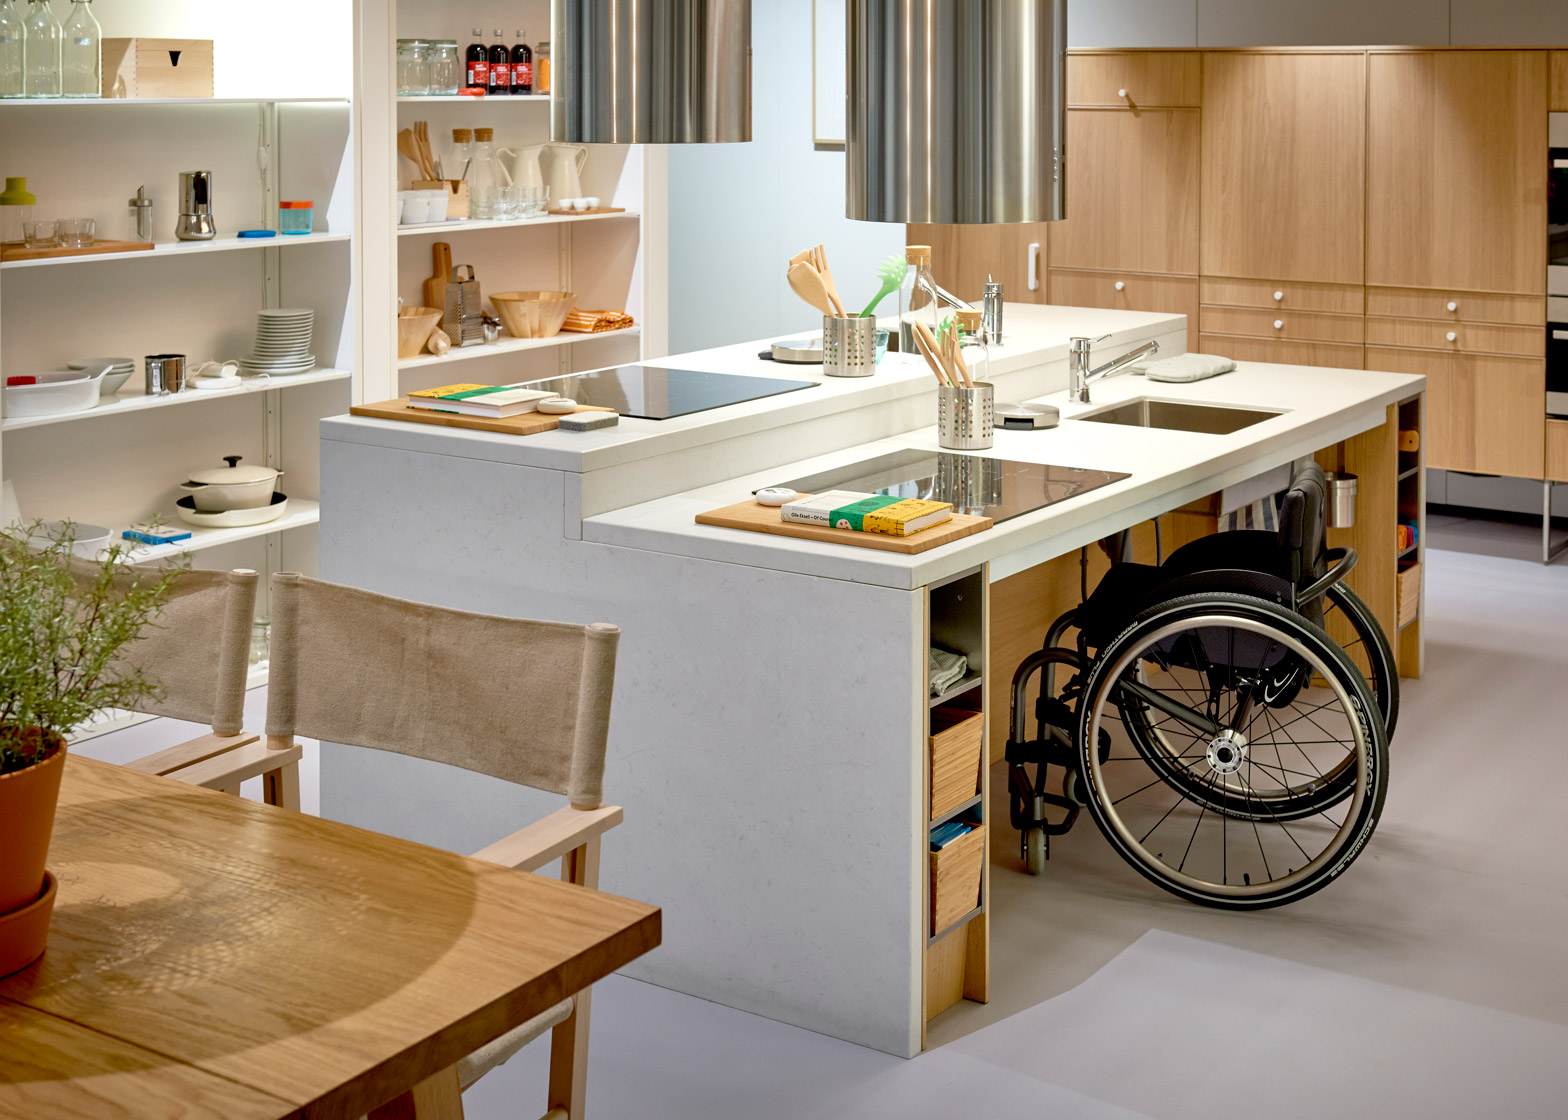 Ikea Museum Will Open in Sweden - Curbed - photo#27